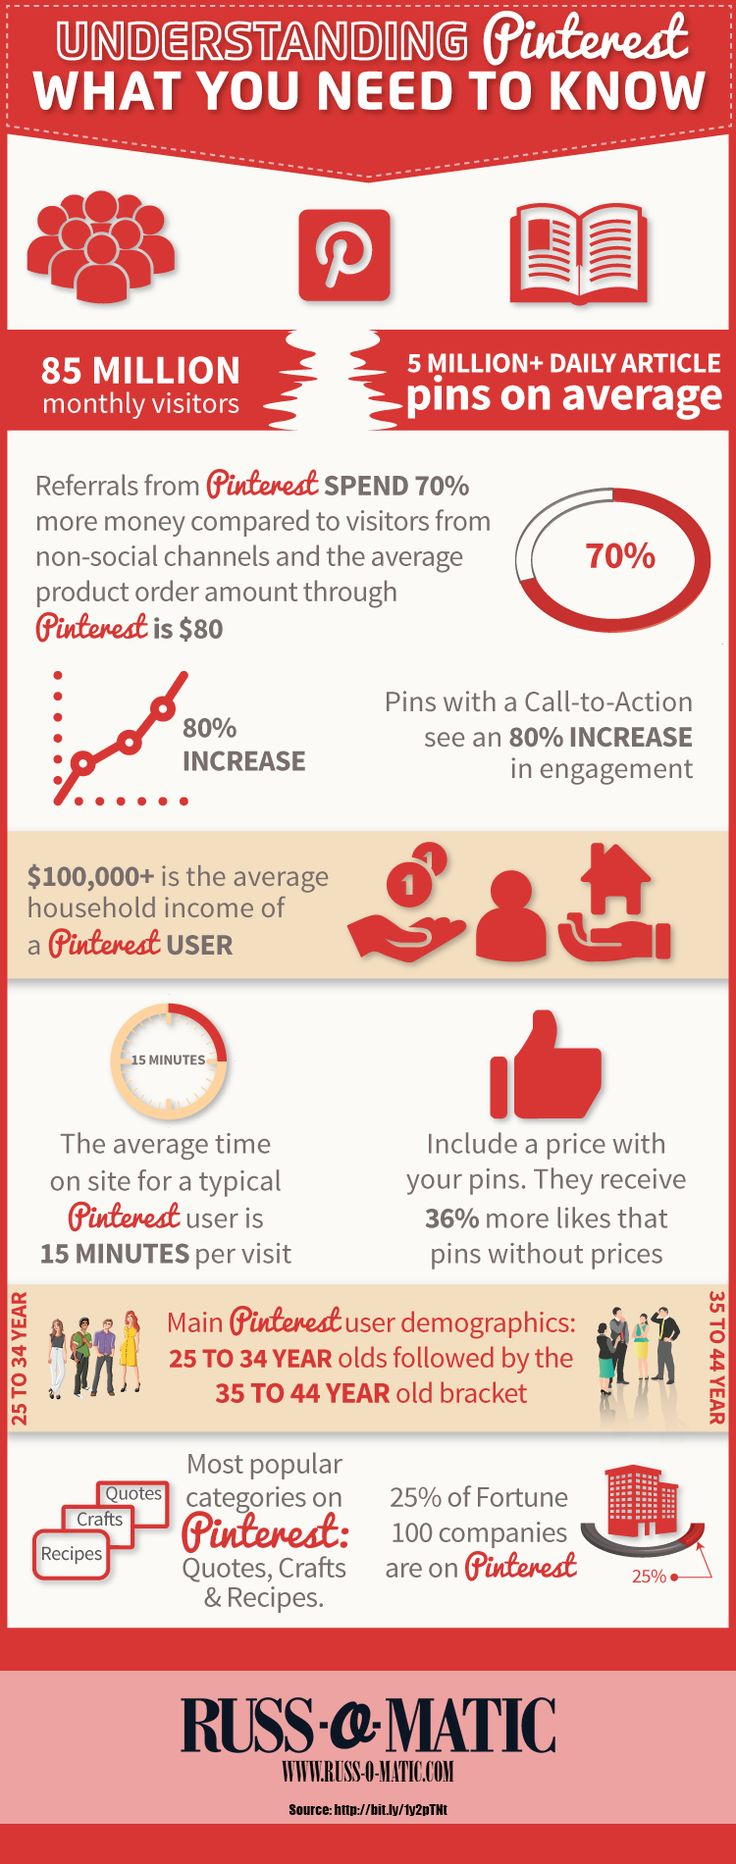 Pinterest for Business: Understand it and Grow (Infographic) - http://www.russ-o-matic.com/2015/02/pinterest-business-understand-grow-infographic/